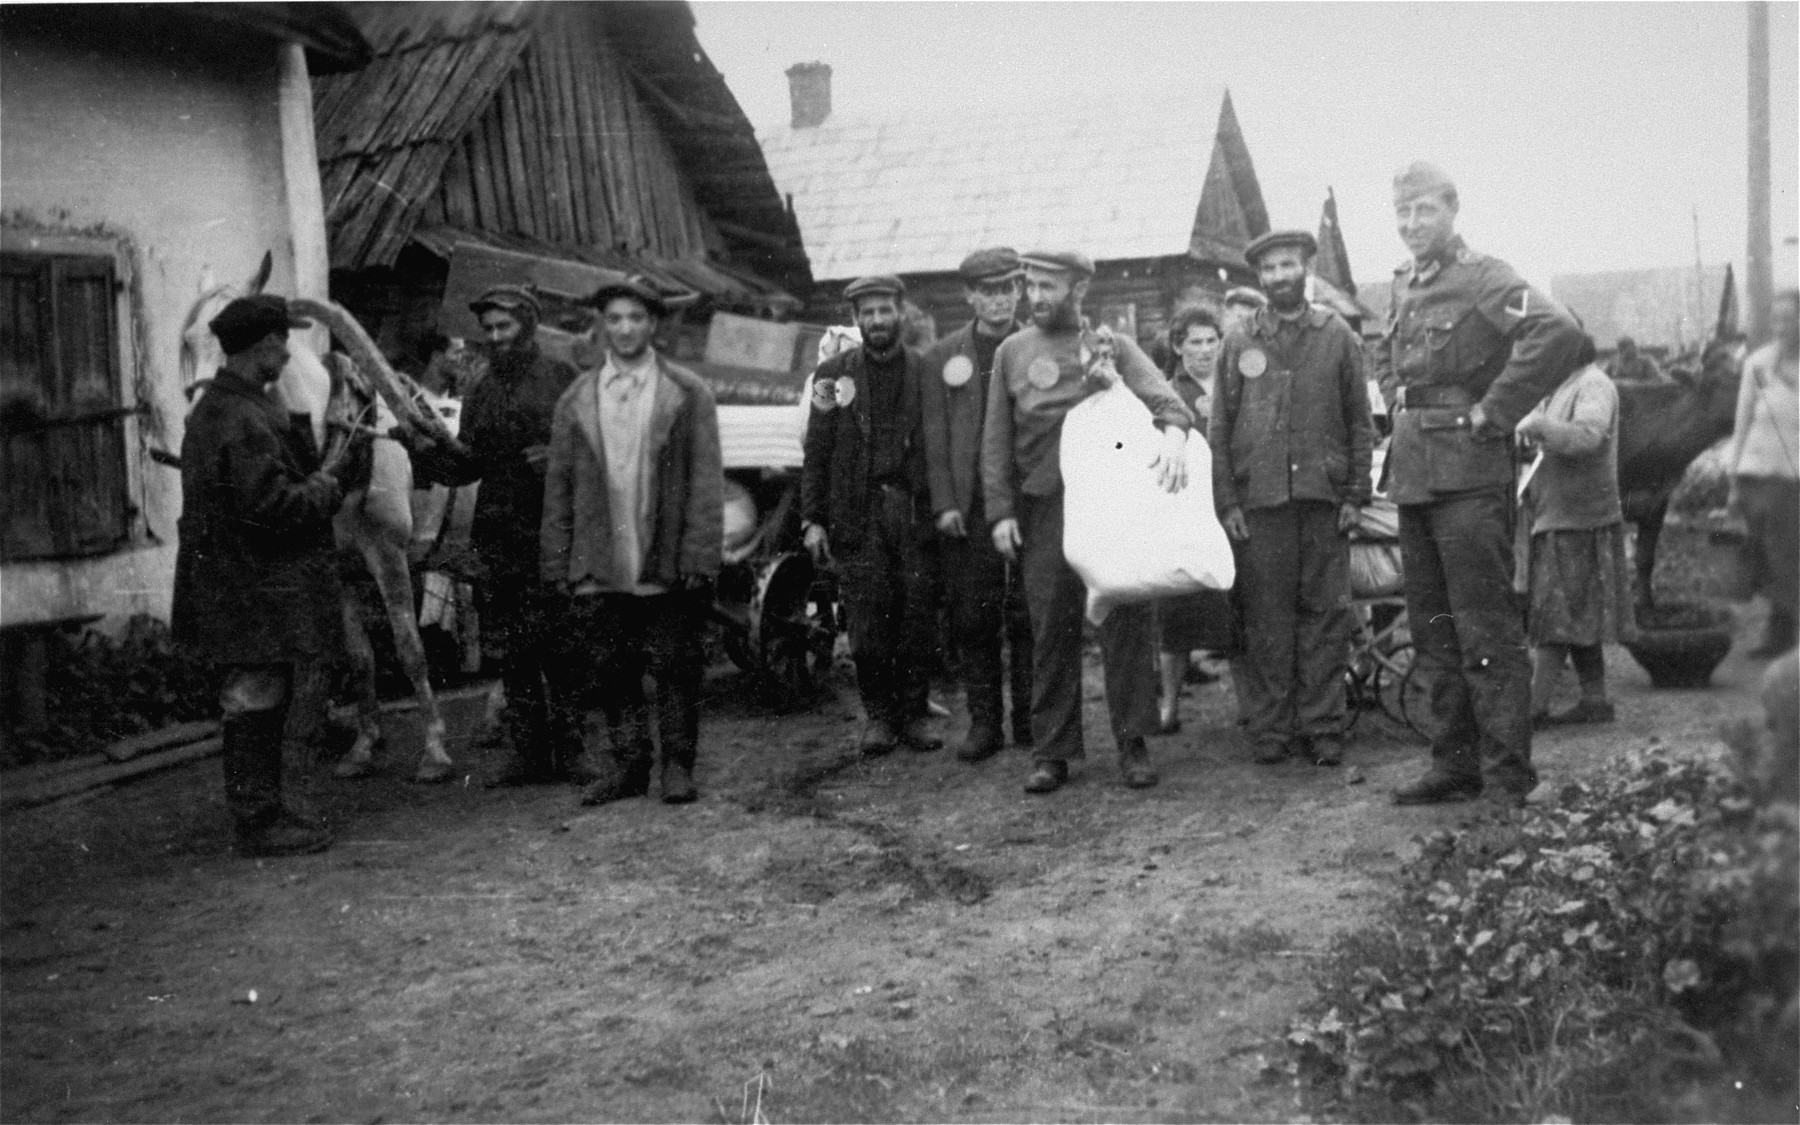 Jews wearing circular badges are gathered with their belongings on an unpaved street during a deportation action from the Krzemieniec ghetto.